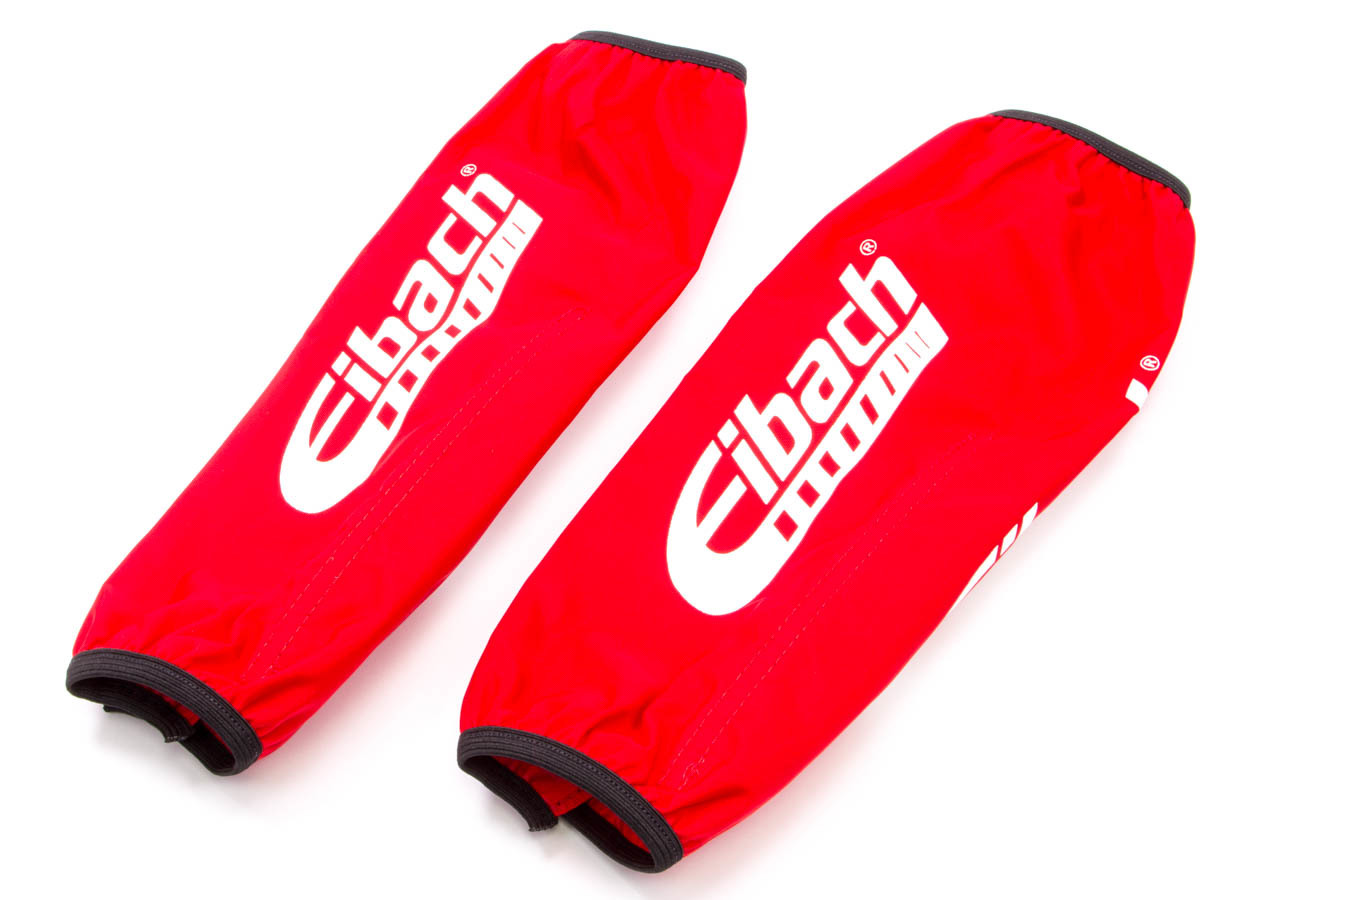 Eibach ESB12-300 Shock Cover, 10-12 in Long, 2.500-3.000 in ID XT Barrel Coil-Over, Elastic Ends, Hook and Loop Closure, Nylon, Red, Eibach Shocks, Pair